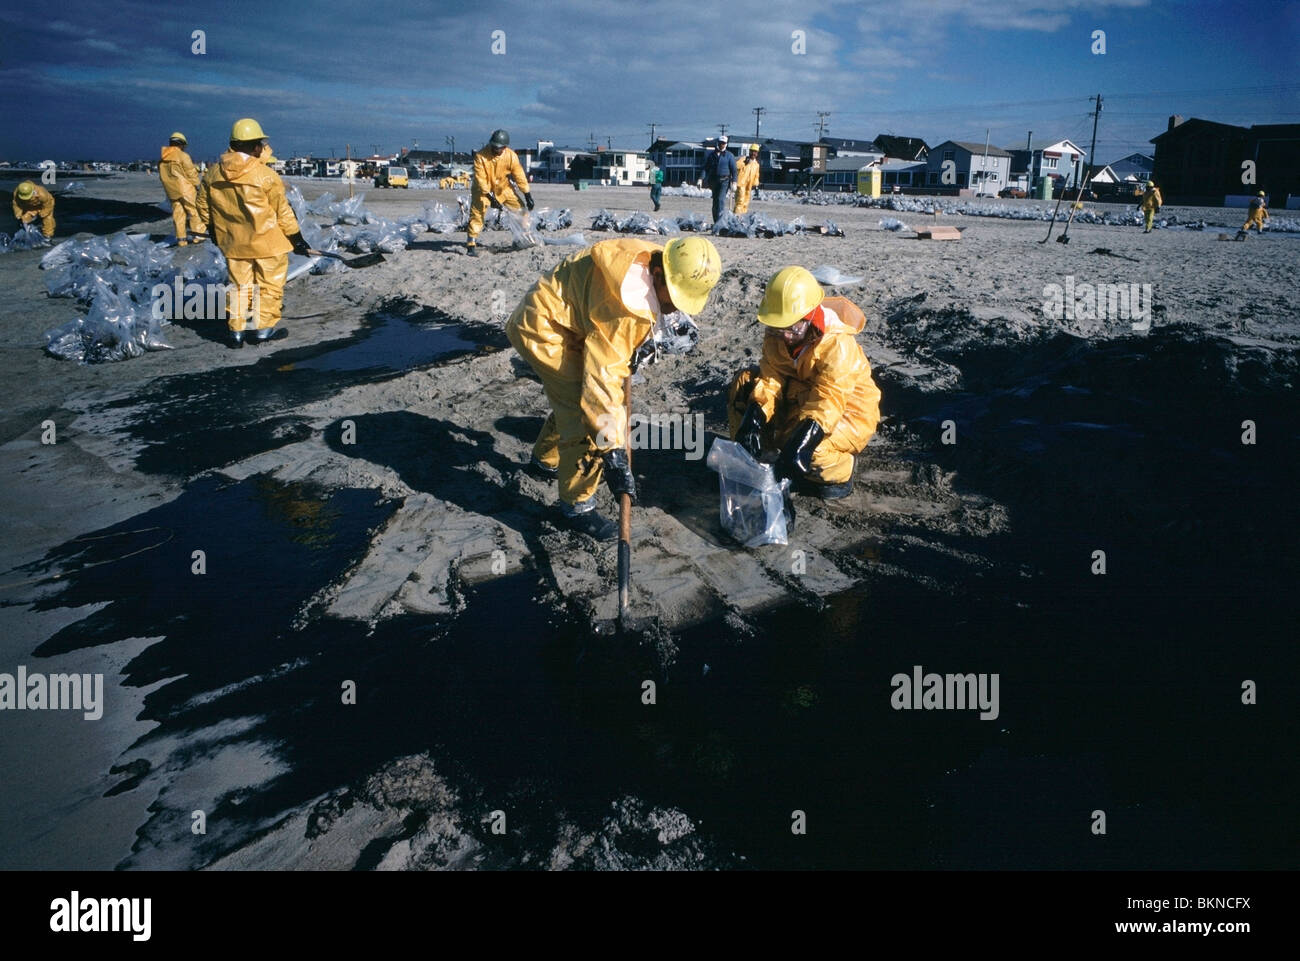 Cleanup crews shovel crude oil from Huntington Beach after a 1990 British Petroleum oil spill in Southern California. - Stock Image